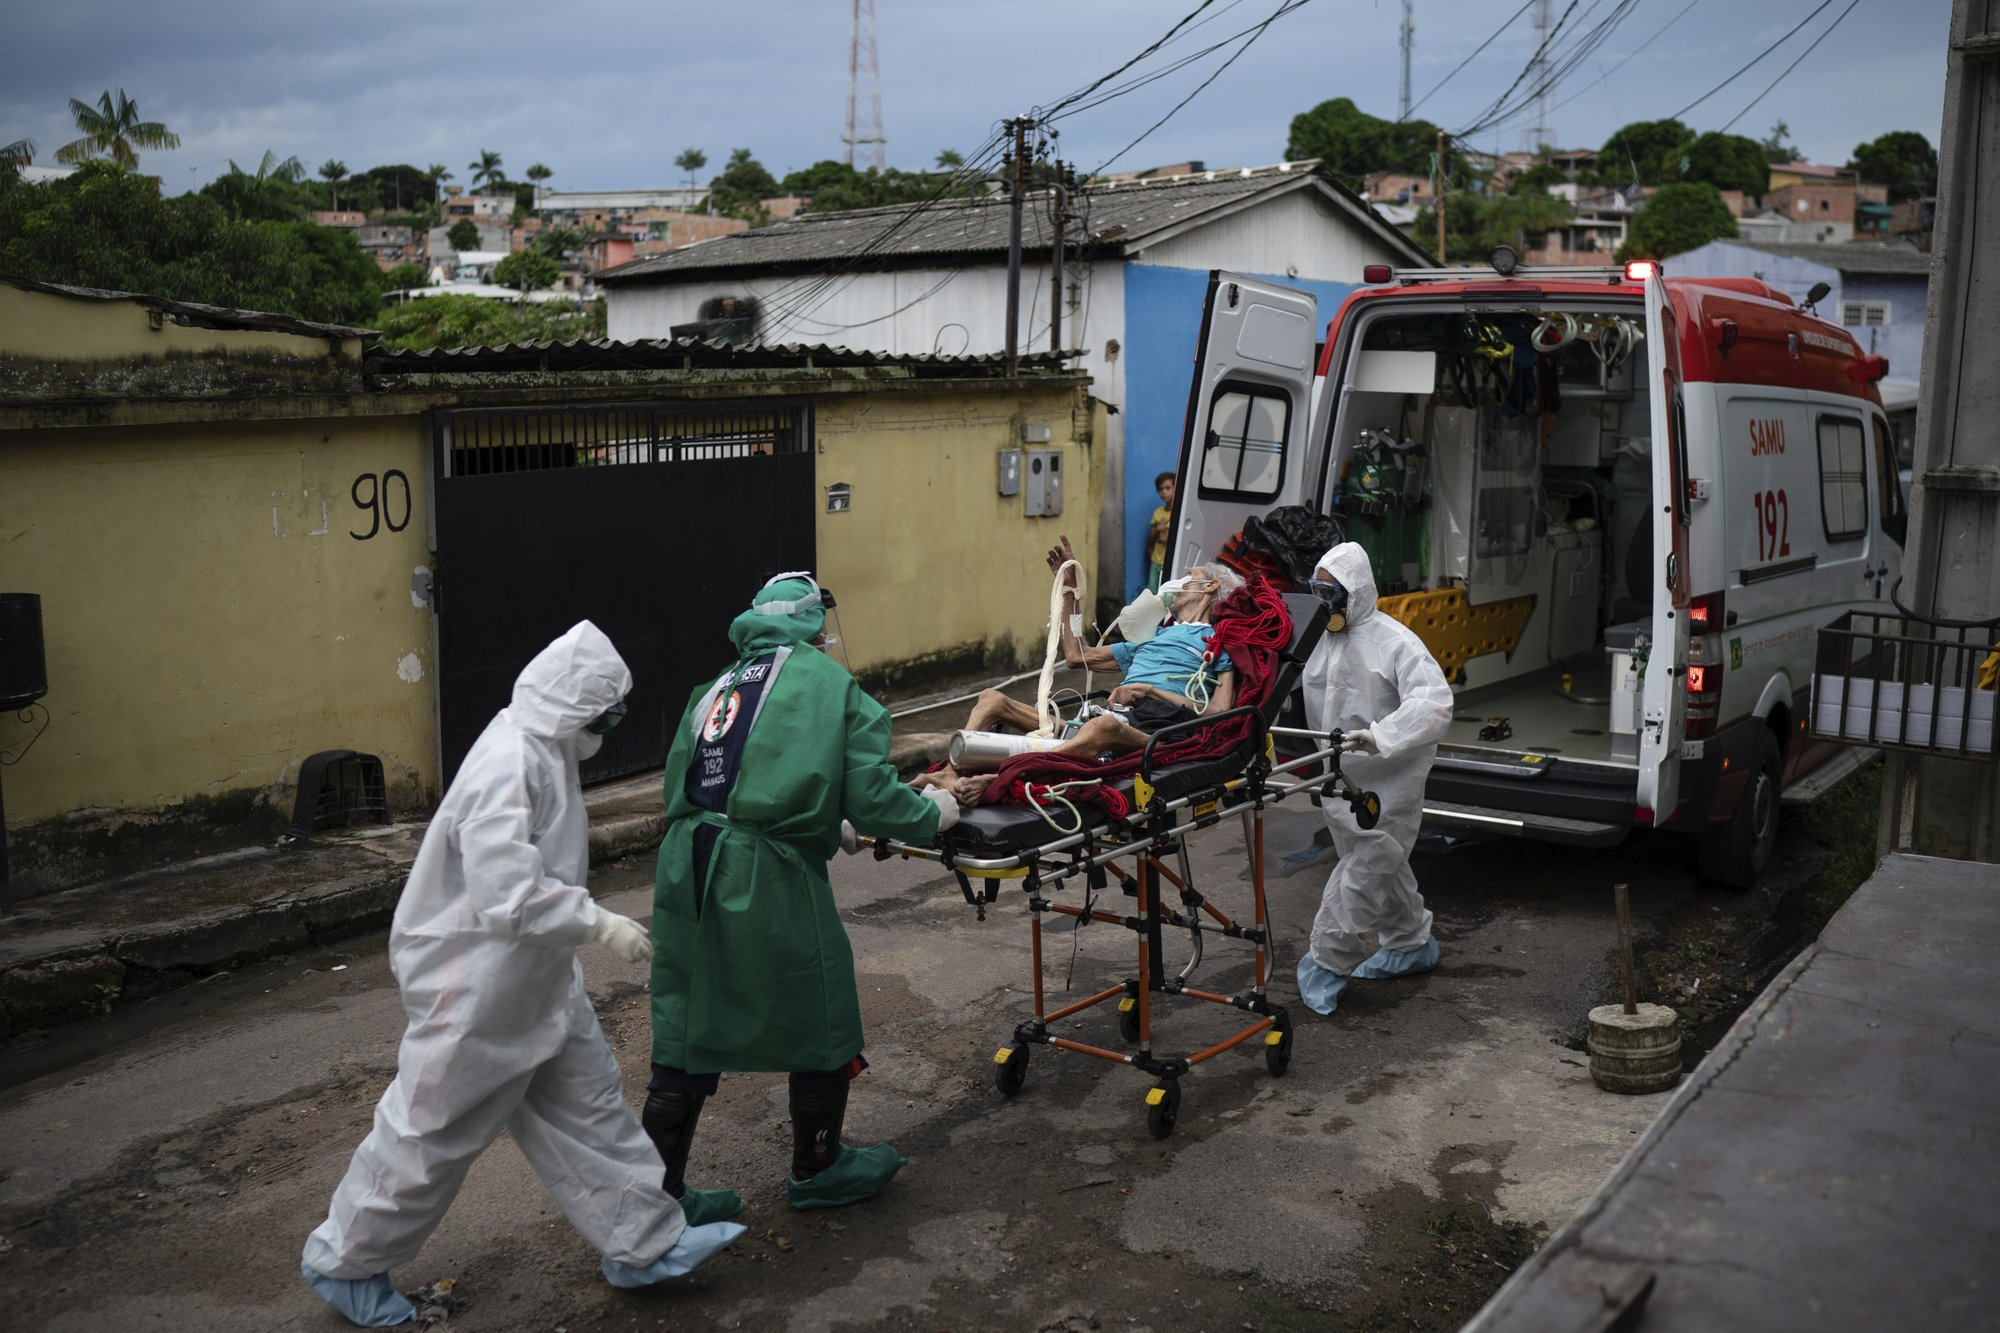 Brazil now has the Second-Highest Number of Coronavirus Cases in the World